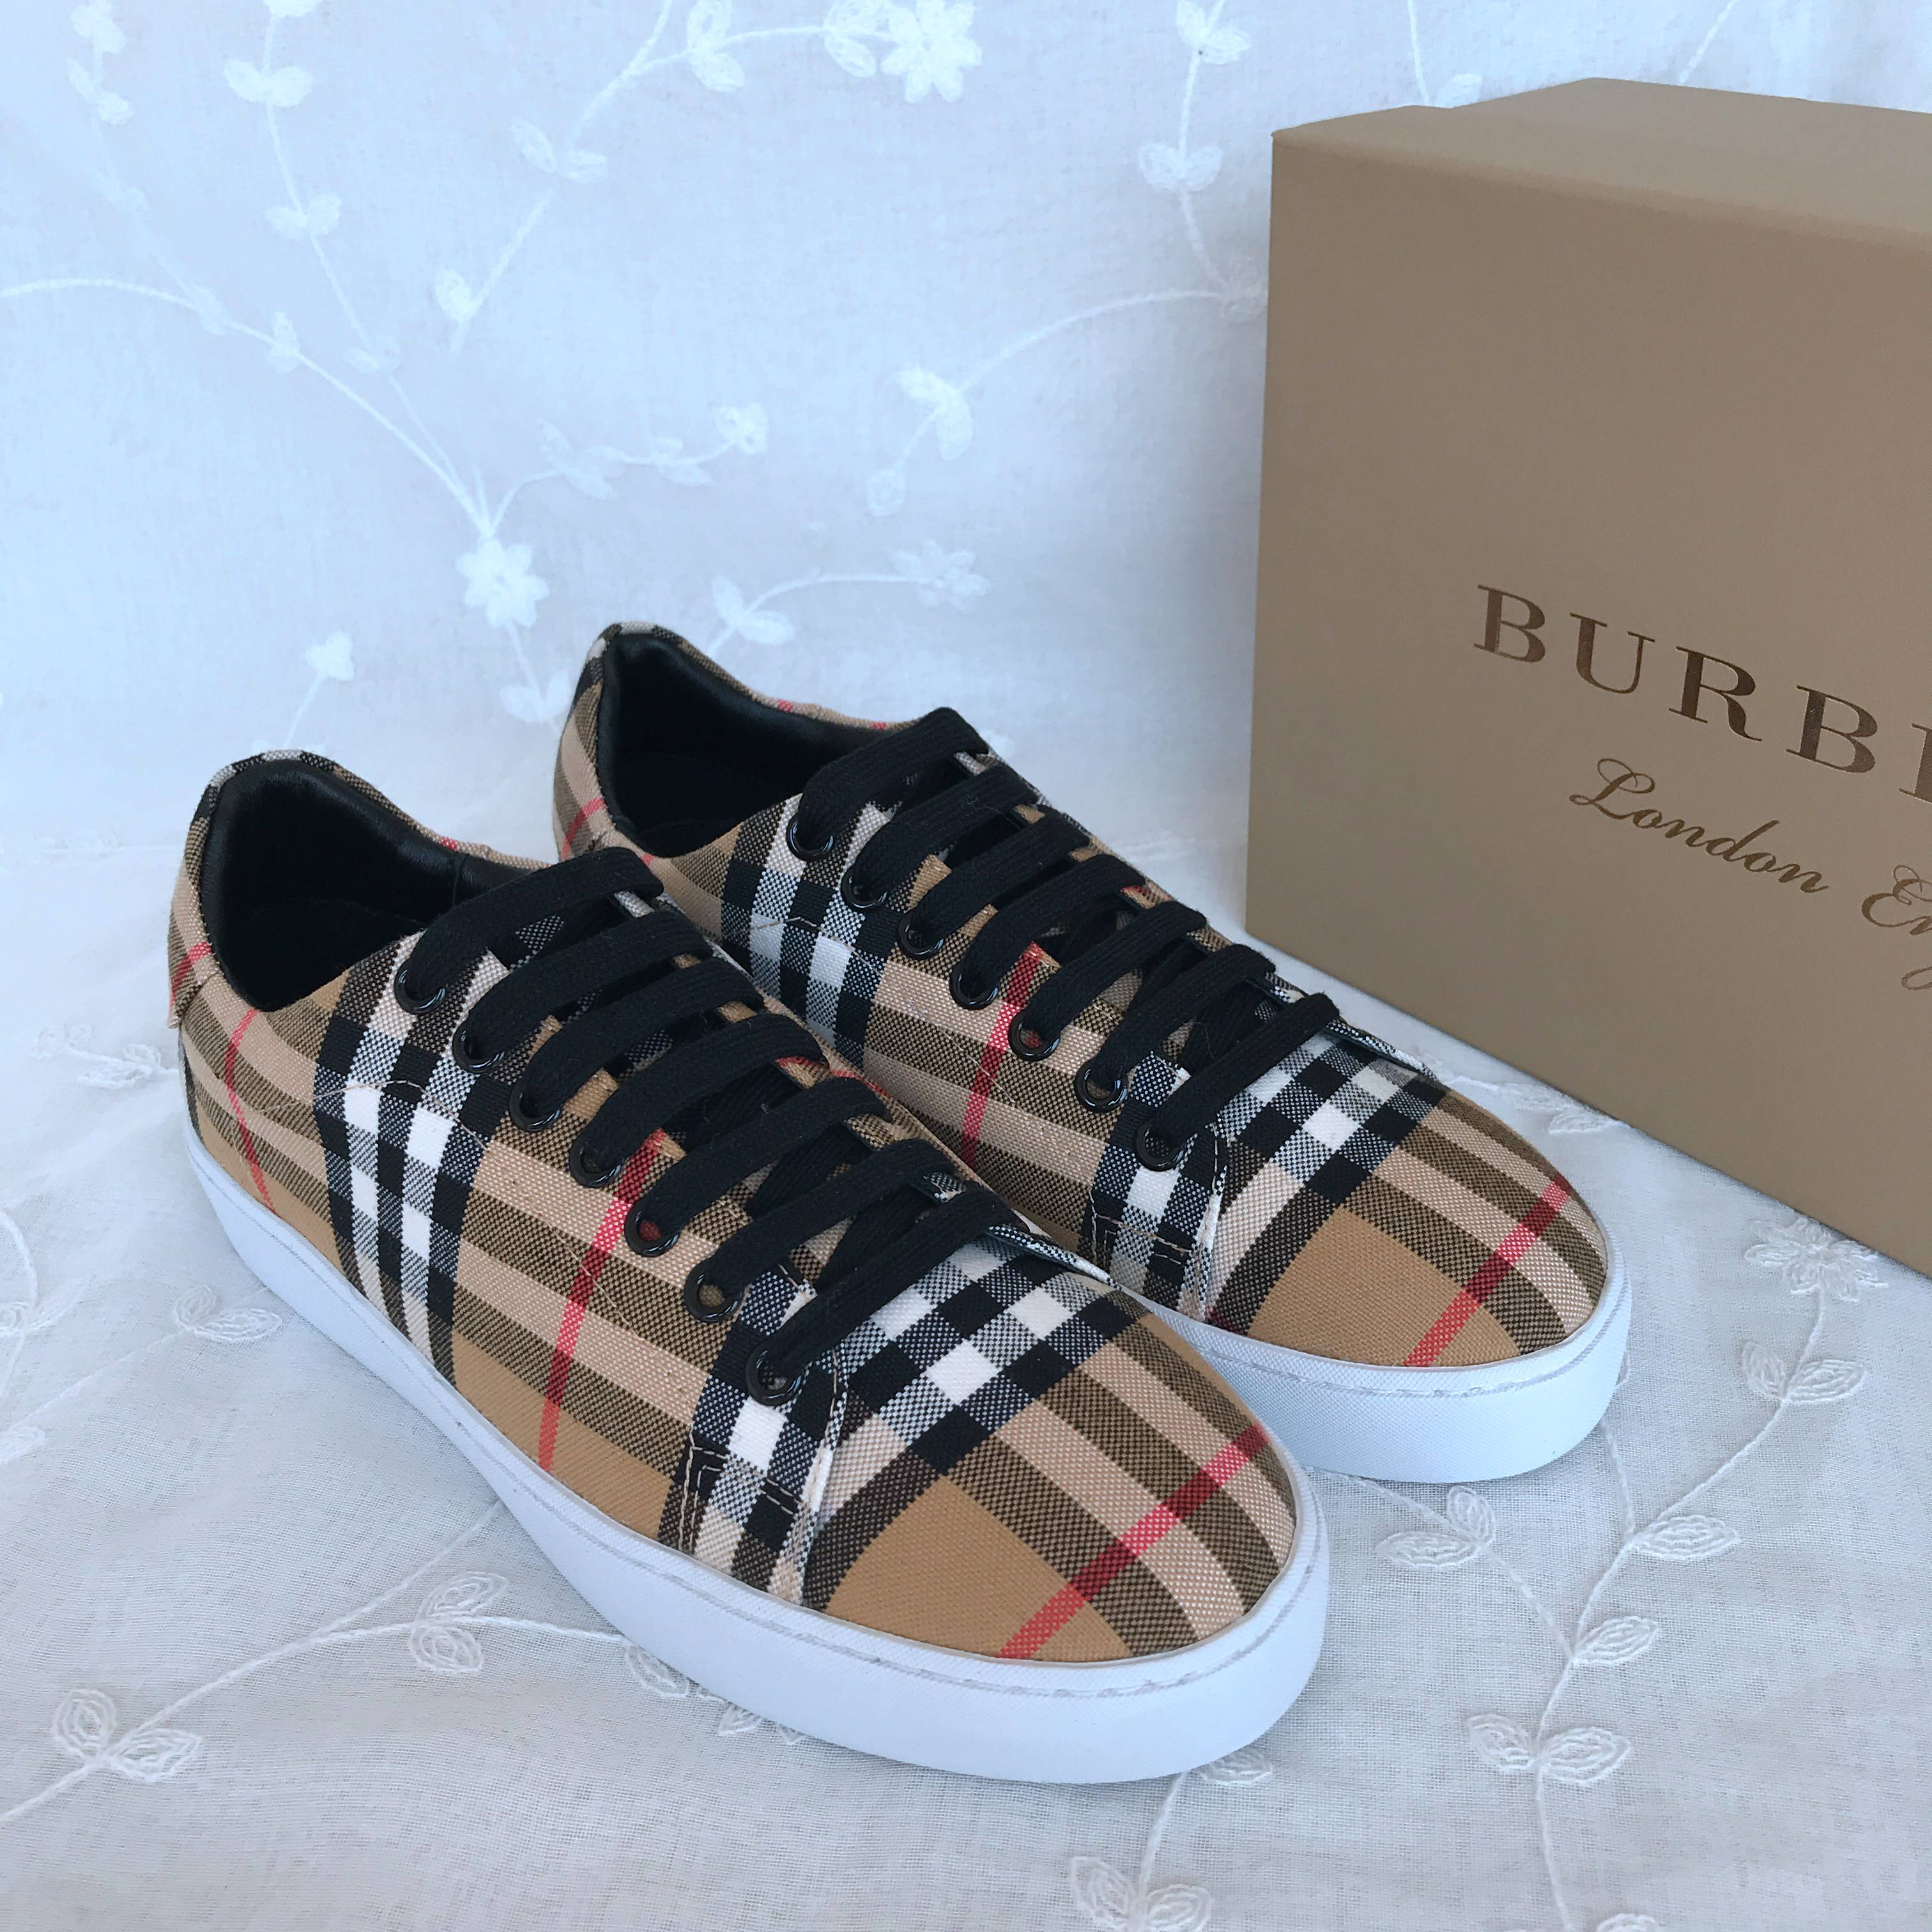 BURBERRY Casual Shoes 832617